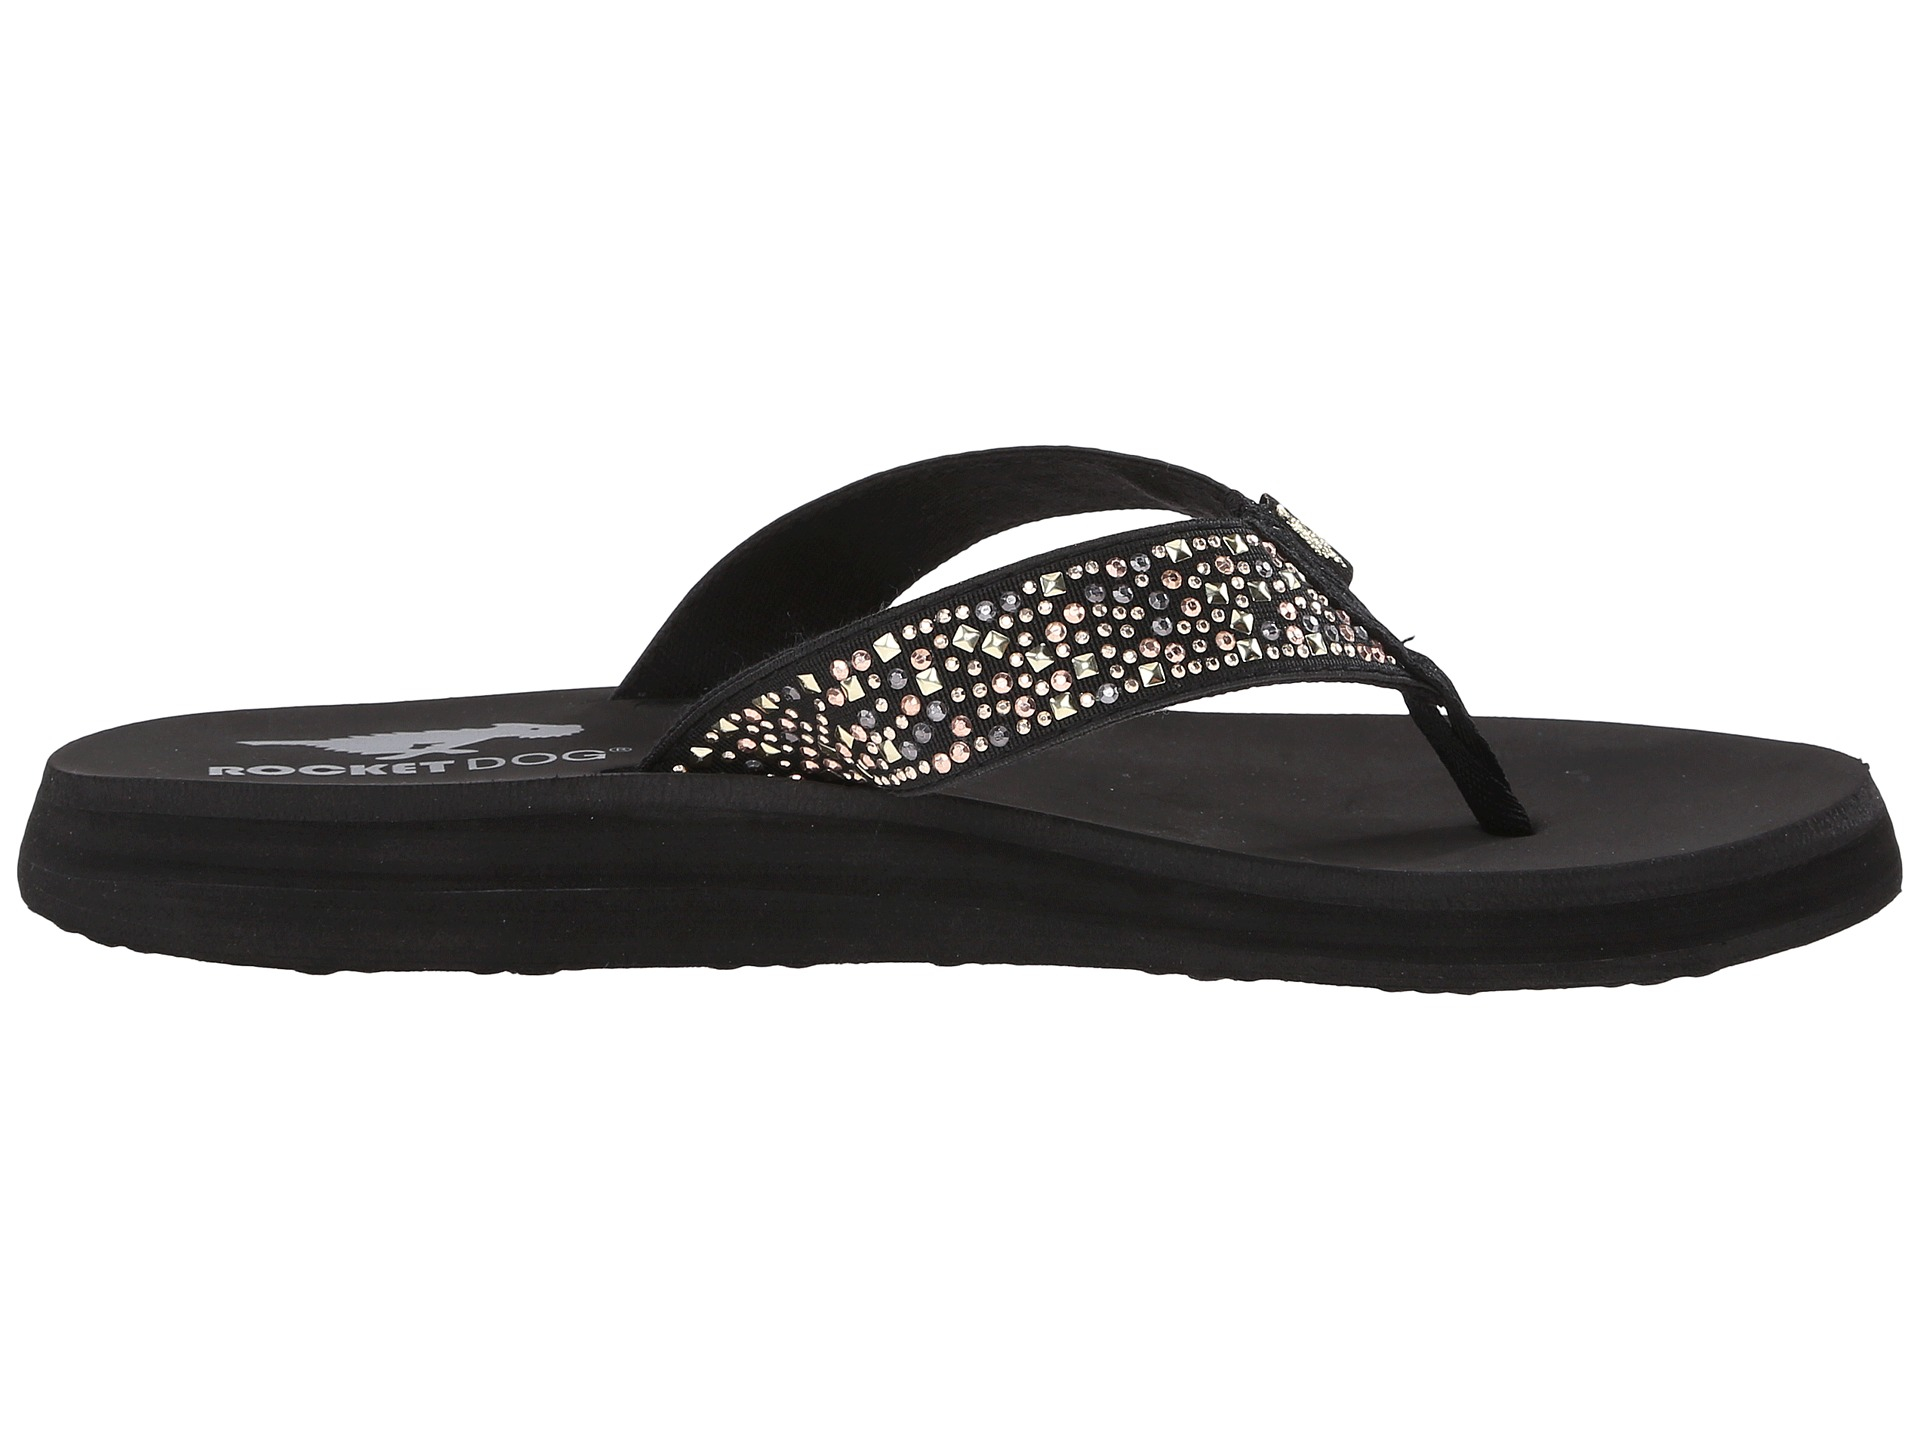 Womens Sandals Rocket Dog Nina Comfort Black Eclipse